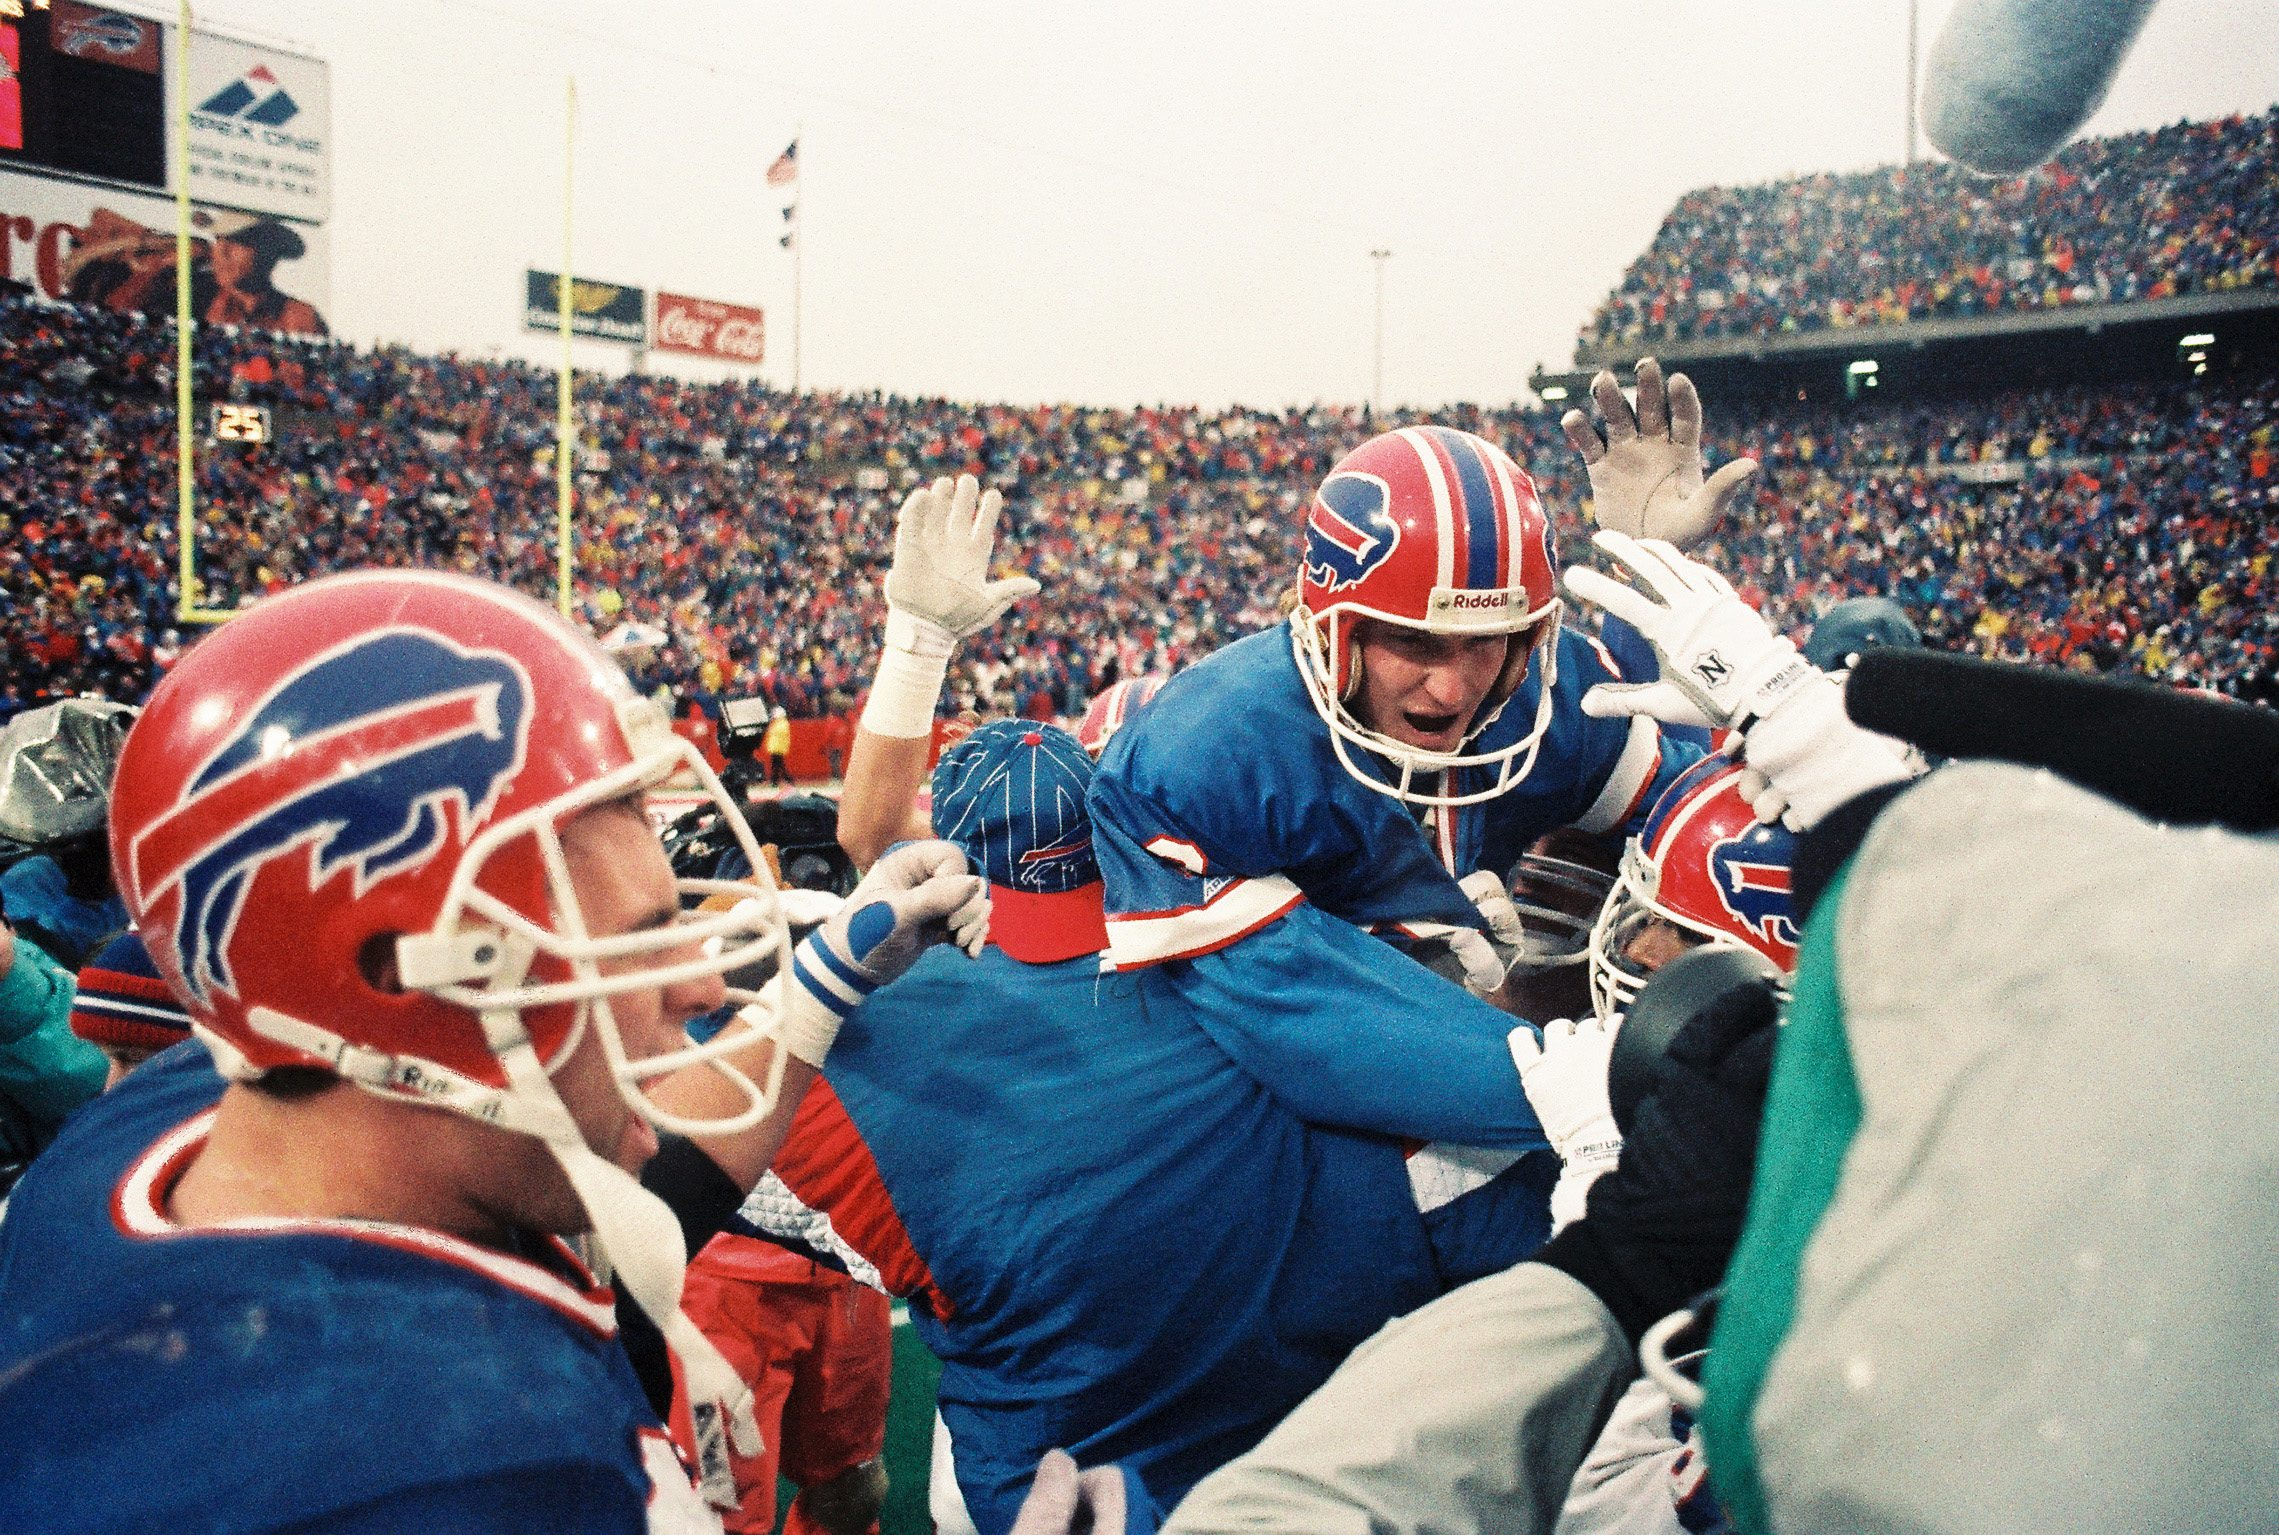 Steve Christie celebrates the game-winning field goal that capped the greatest comeback in NFL history. (James P. McCoy/News file photo)